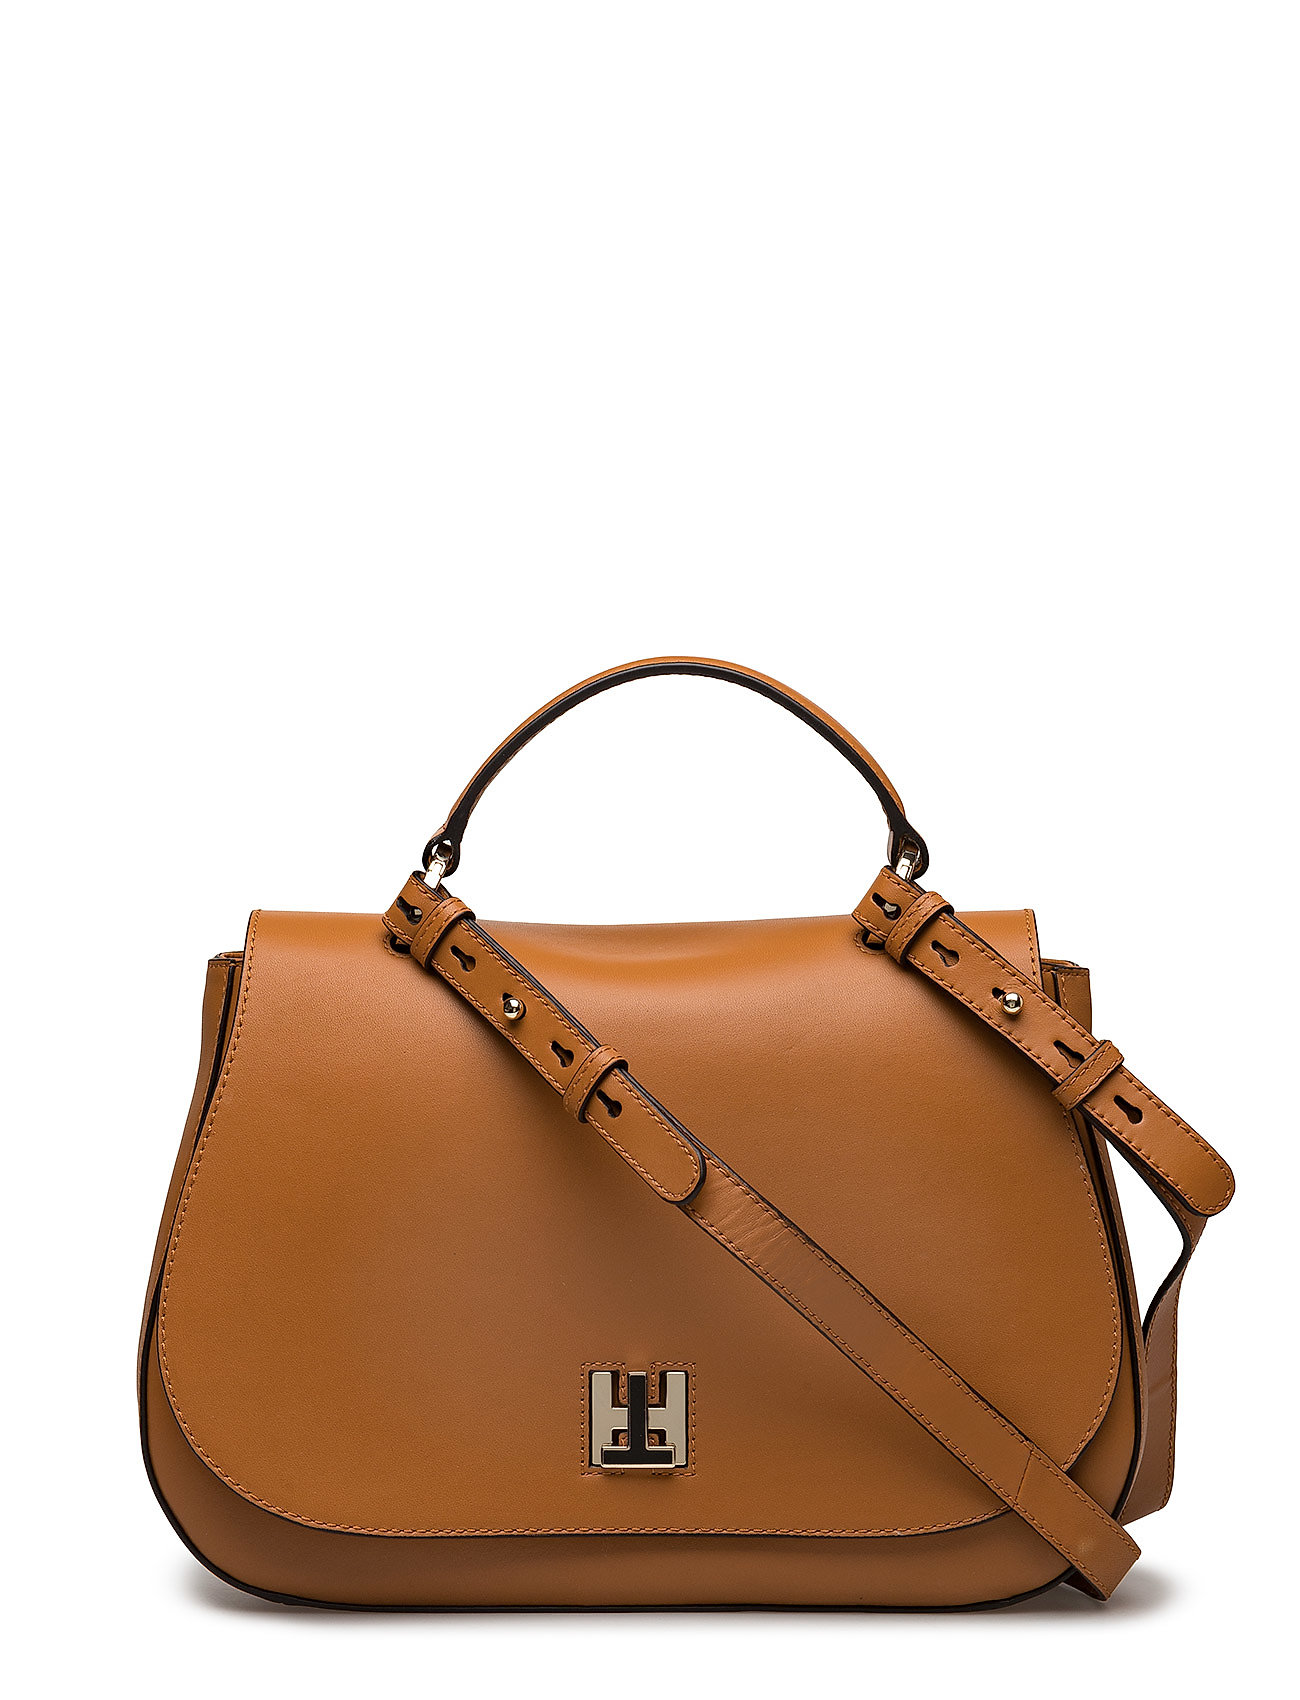 Tommy Hilfiger Laukut Miehet : Th twist leather med cognac tommy hilfiger